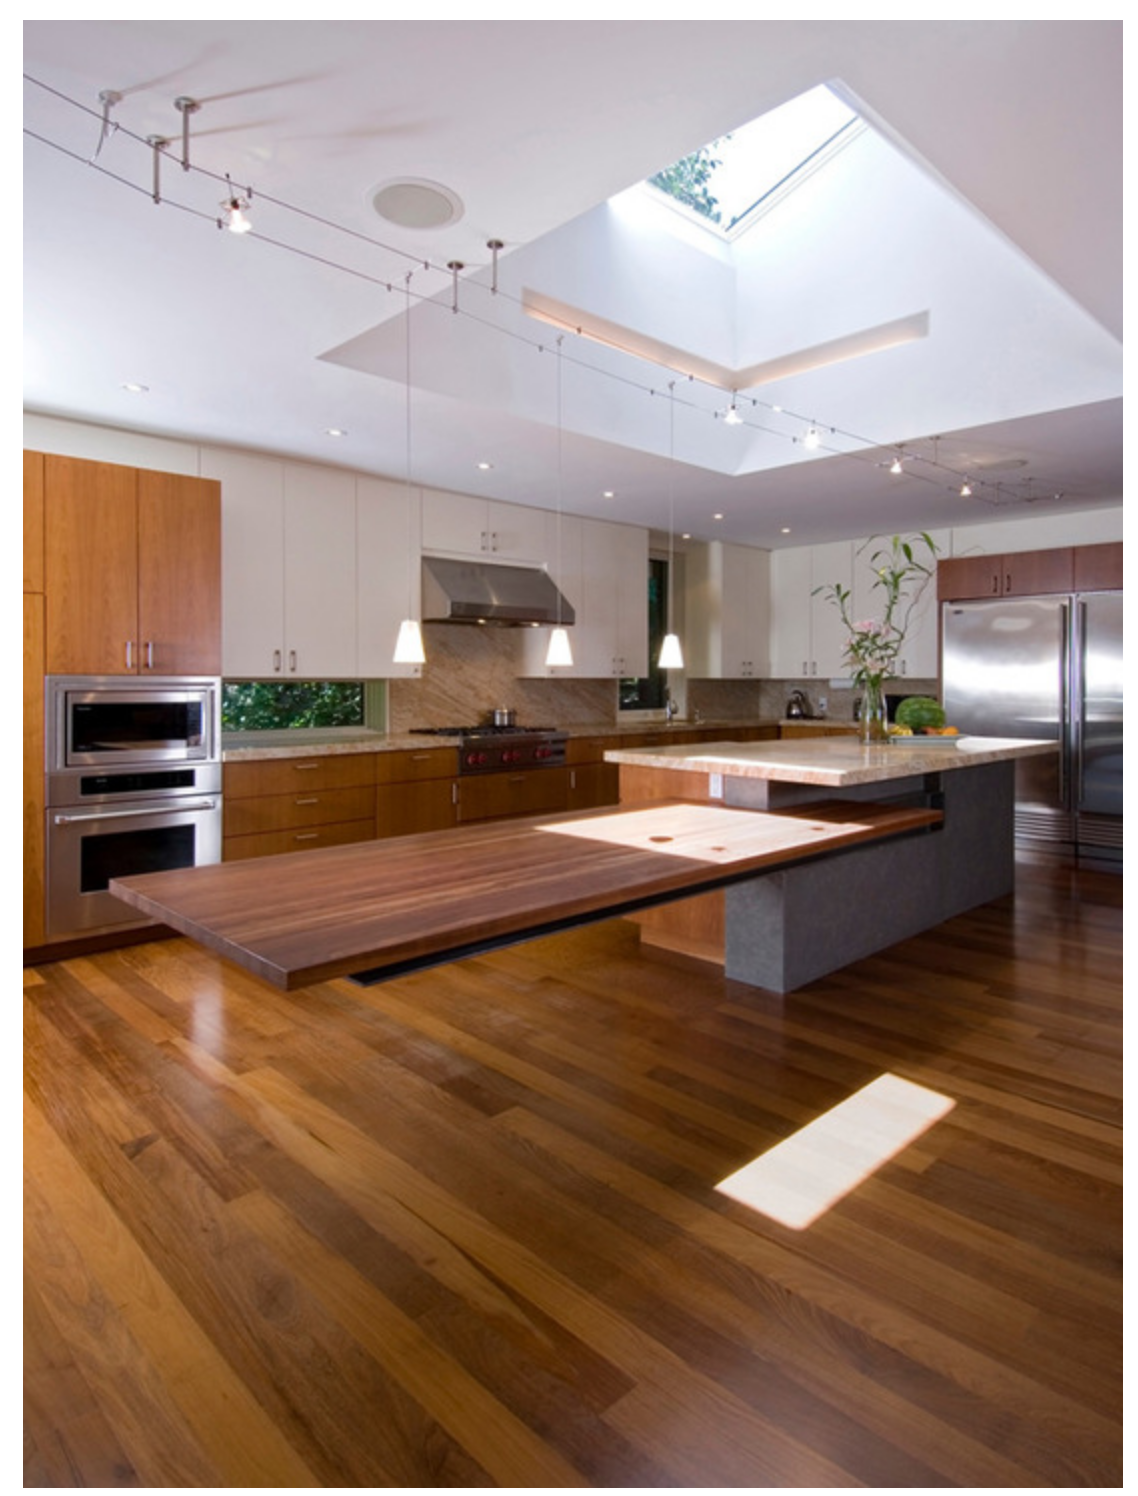 Dining Table Attached To Kitchen Island Interior Design Custom Kitchen Island Kitchen Island Design Kitchen Island Table